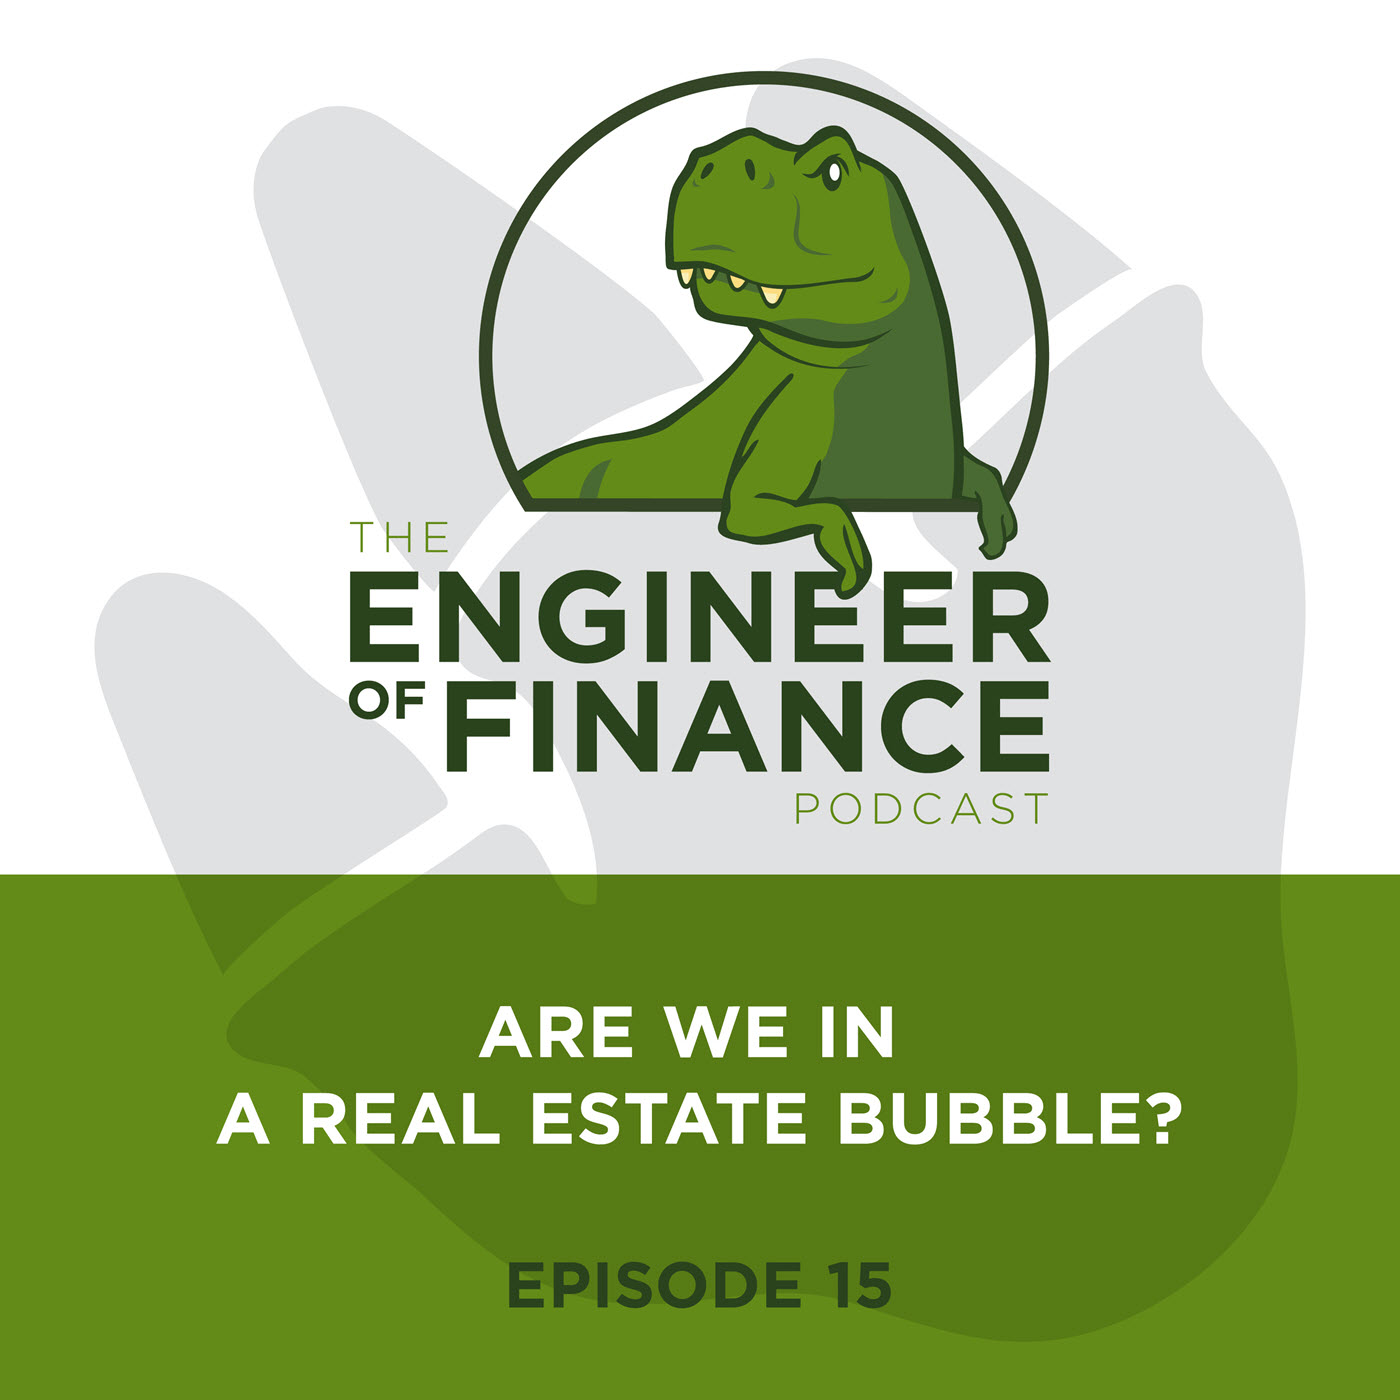 Are We In A Real Estate Bubble? – Episode 15